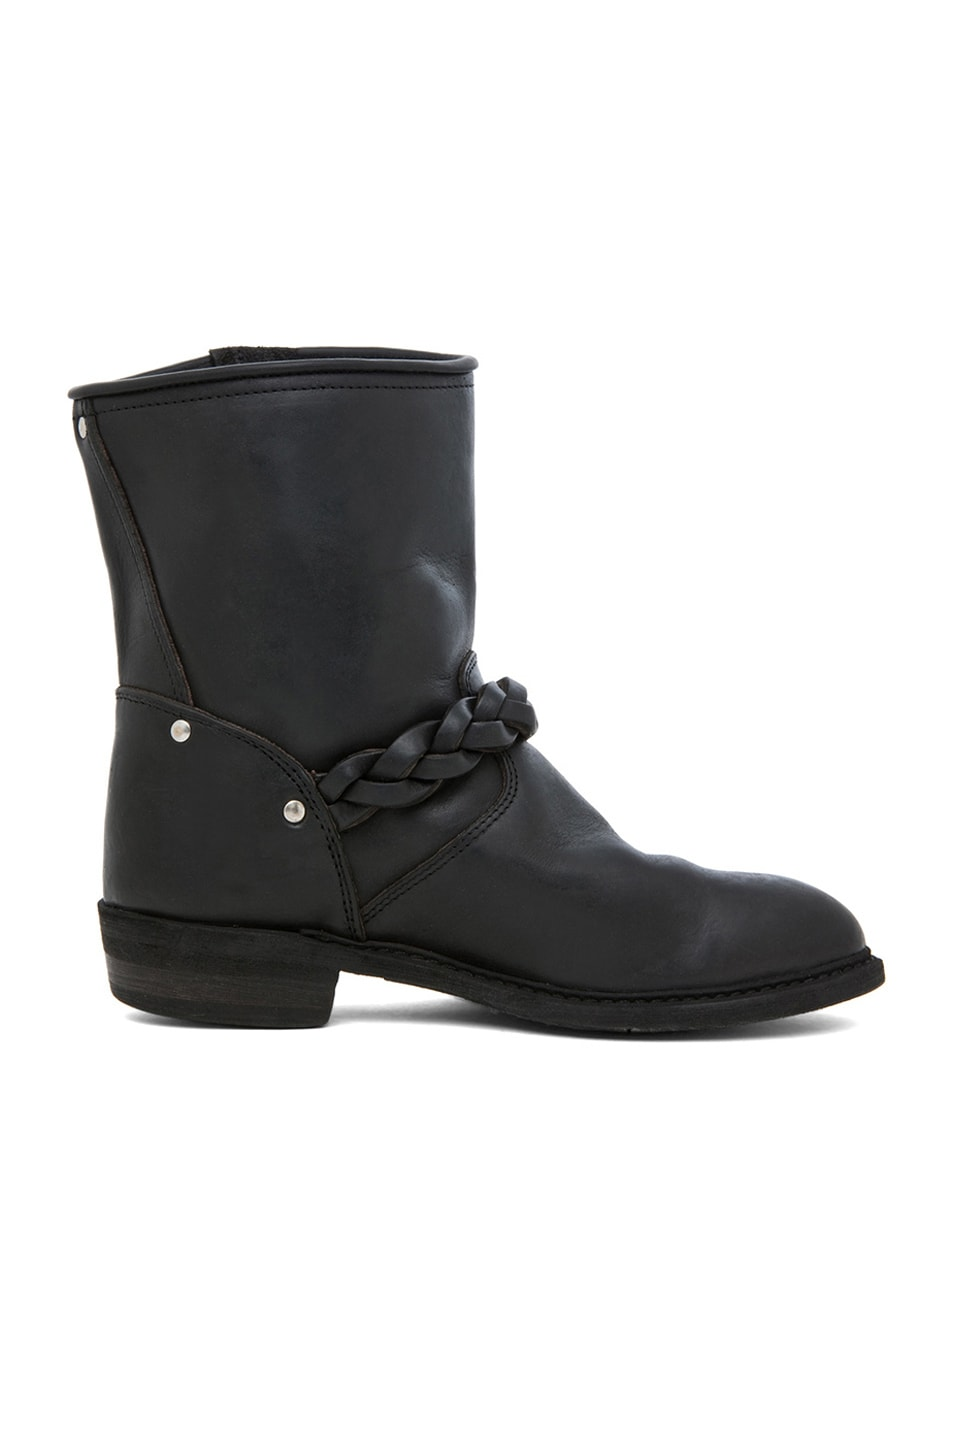 Image 5 of Golden Goose Leather Short Biker Boots in Black Stud